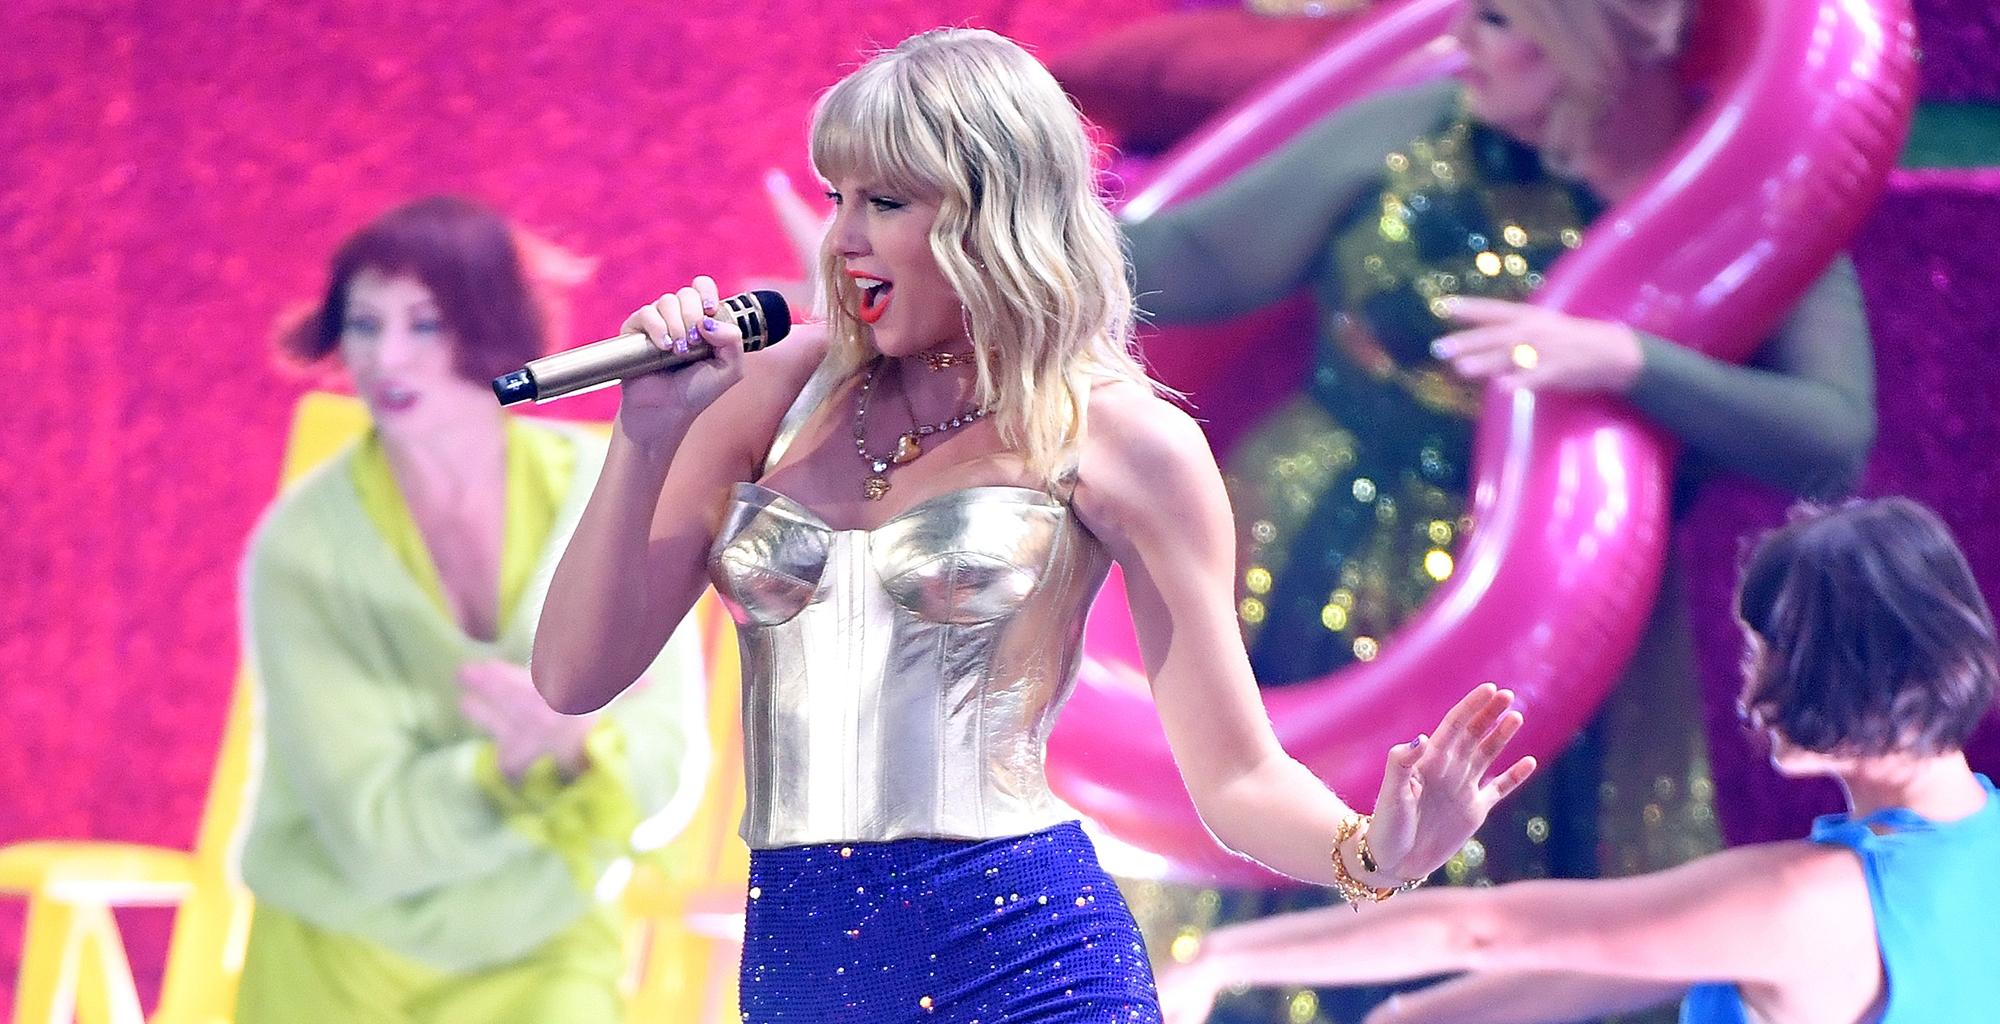 Taylor Swift Is The New Lady Gaga And Madonna With Her New Moves As Critics Like Kid Rock Pounce